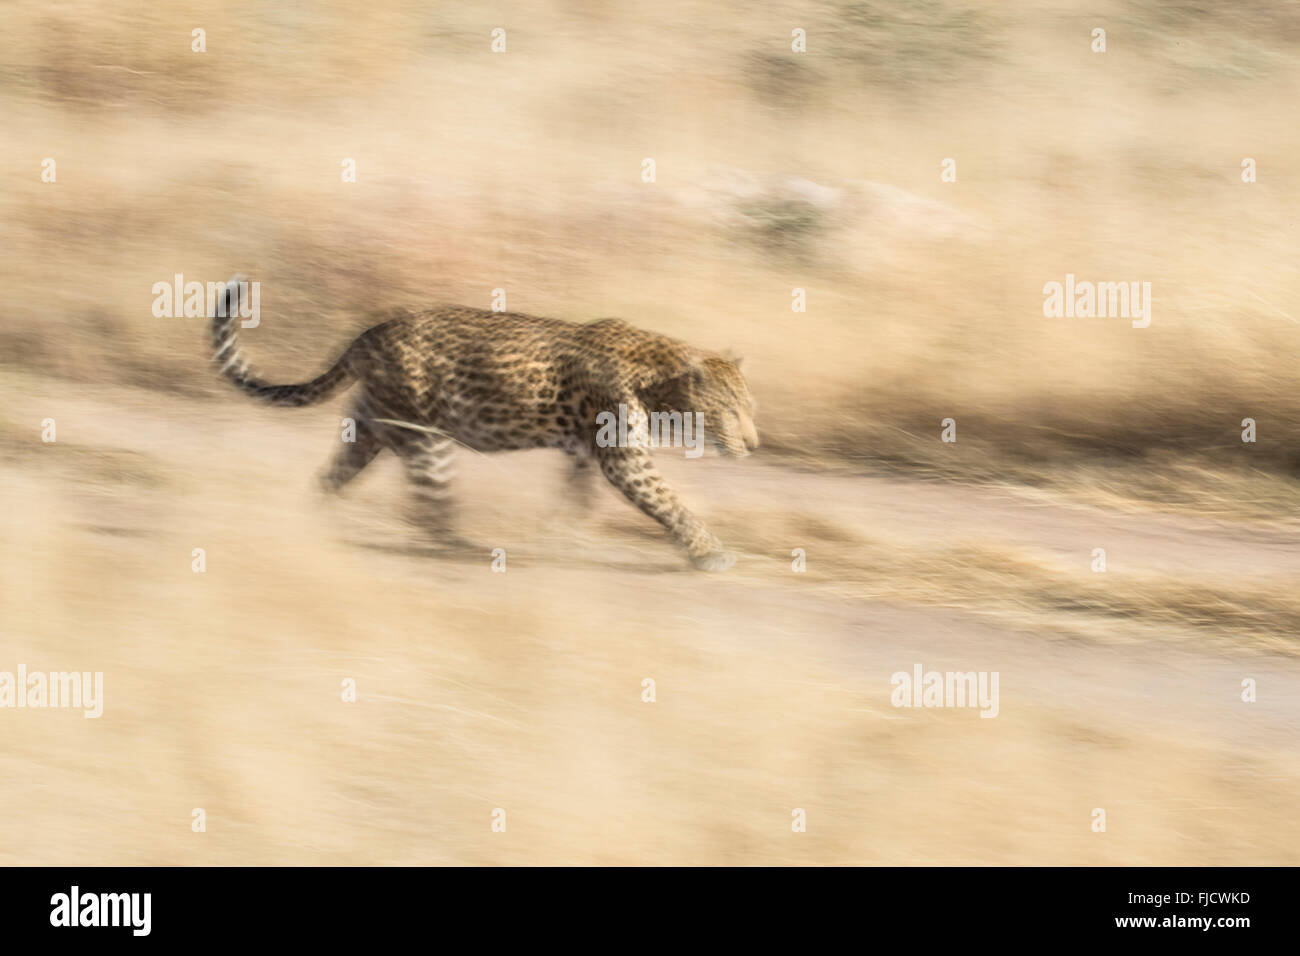 Leopard in motion blur - Stock Image